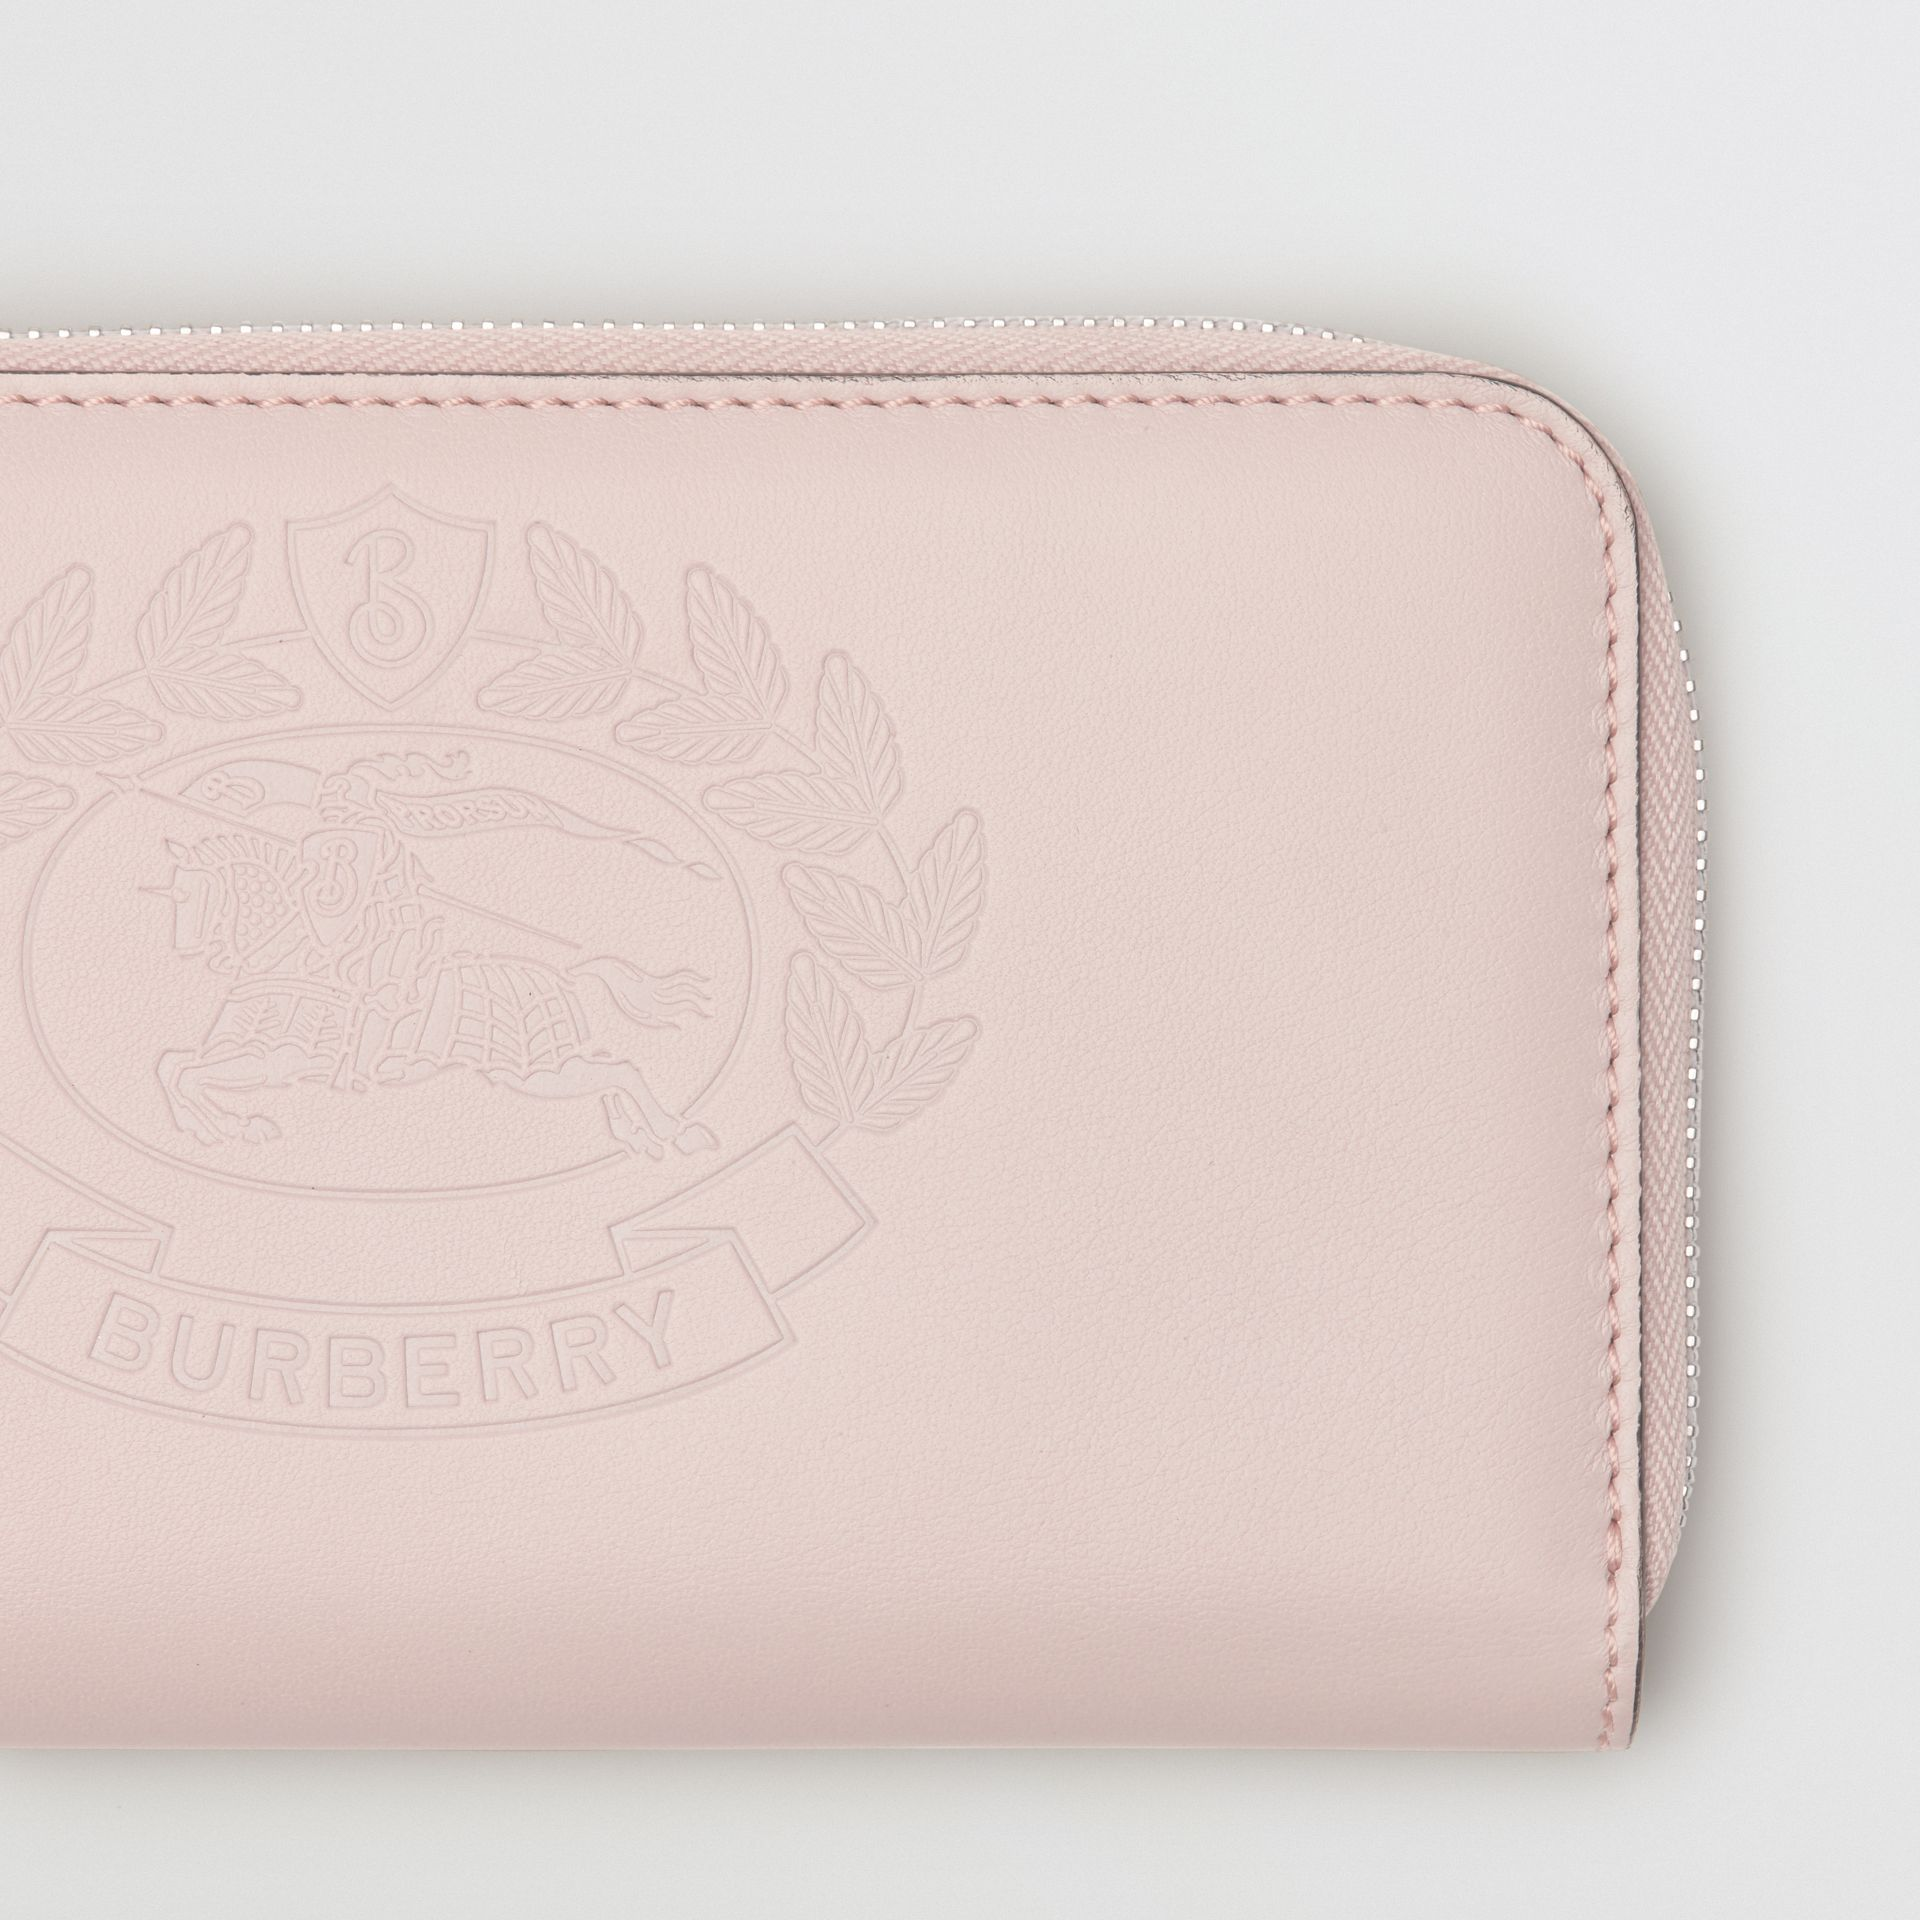 Embossed Crest Two-tone Leather Ziparound Wallet in Chalk Pink - Women | Burberry Hong Kong - gallery image 1